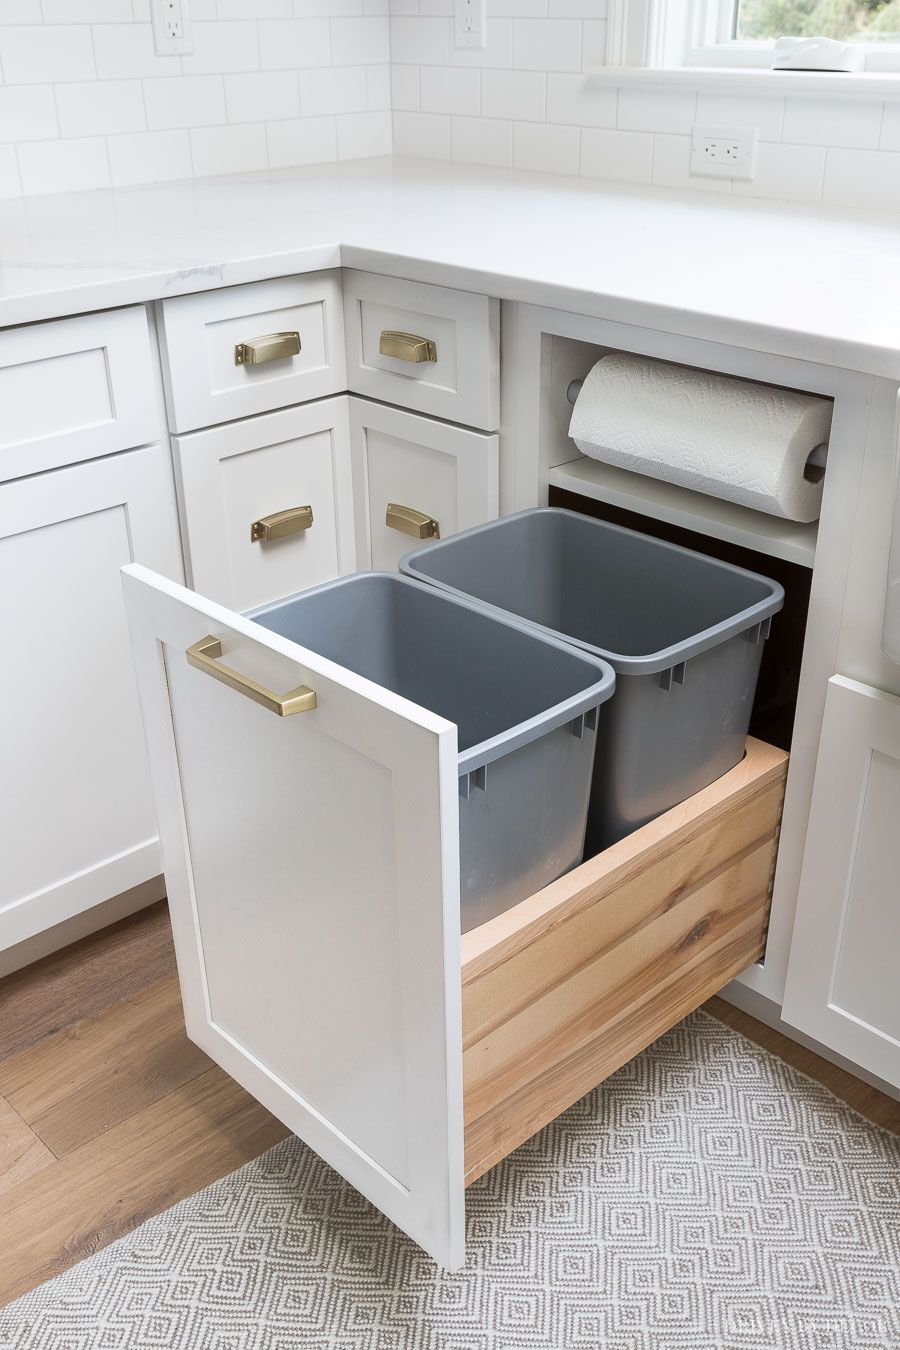 Cabinet Storage Organization Ideas From Our New Kitchen Idee